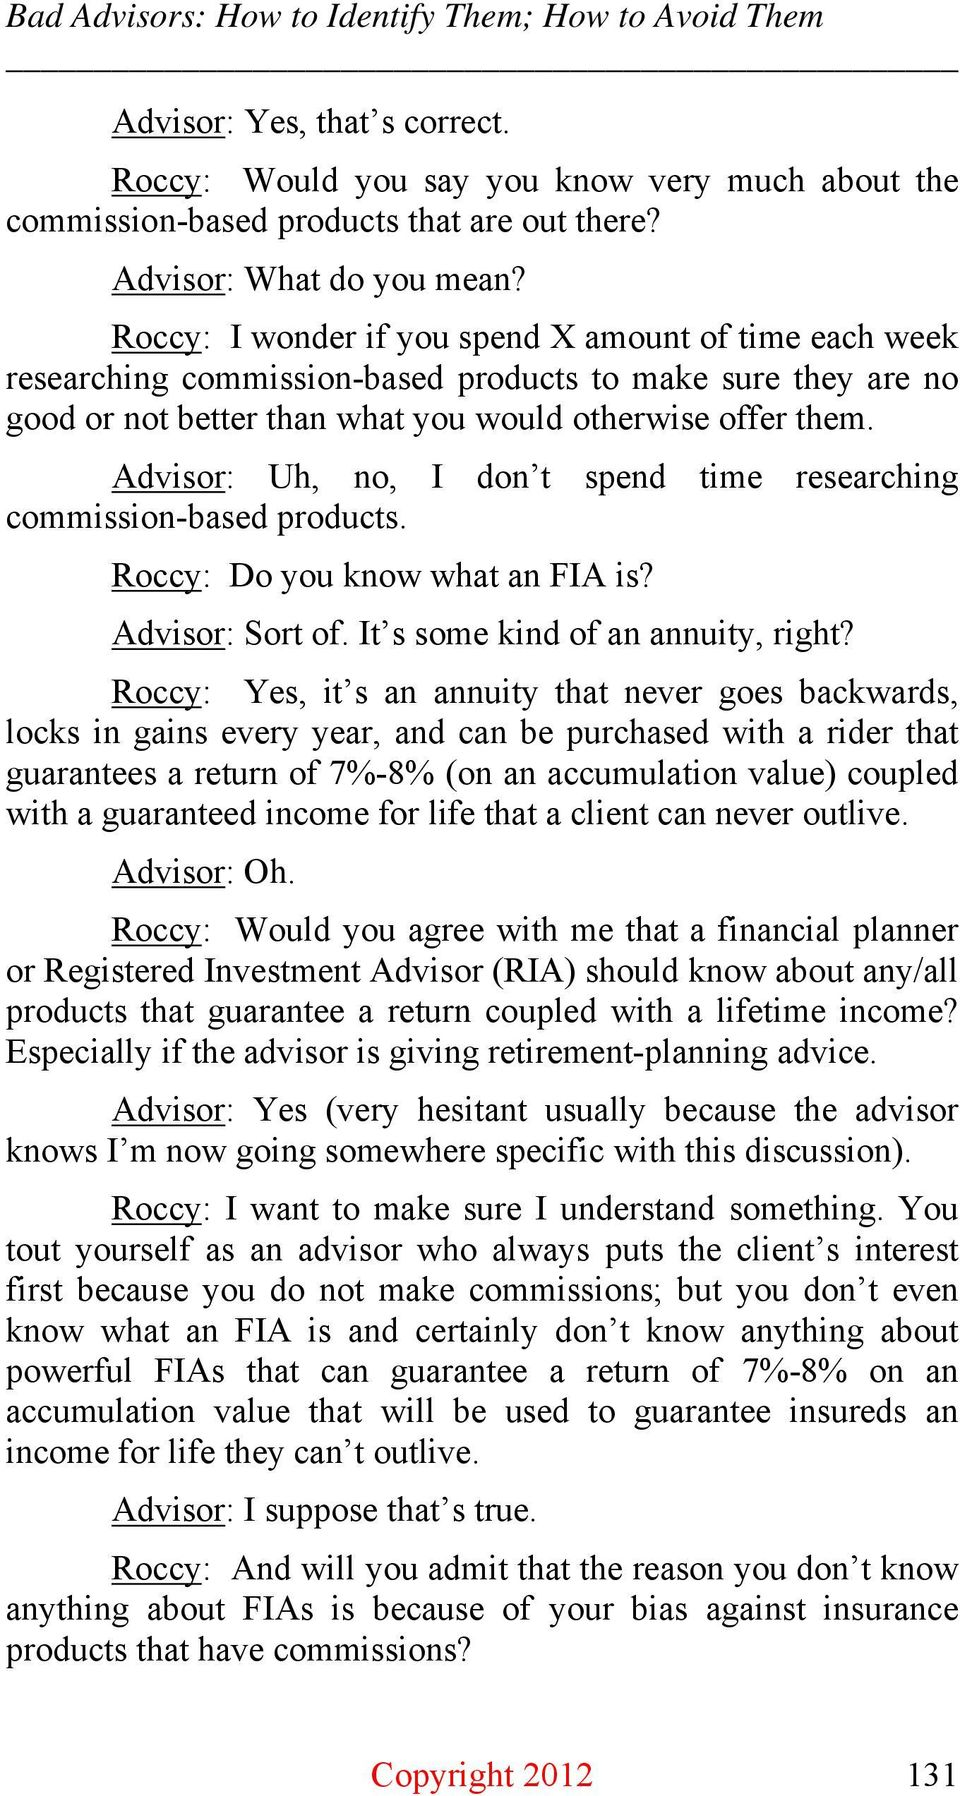 Advisor: Uh, no, I don t spend time researching commission-based products. Roccy: Do you know what an FIA is? Advisor: Sort of. It s some kind of an annuity, right?